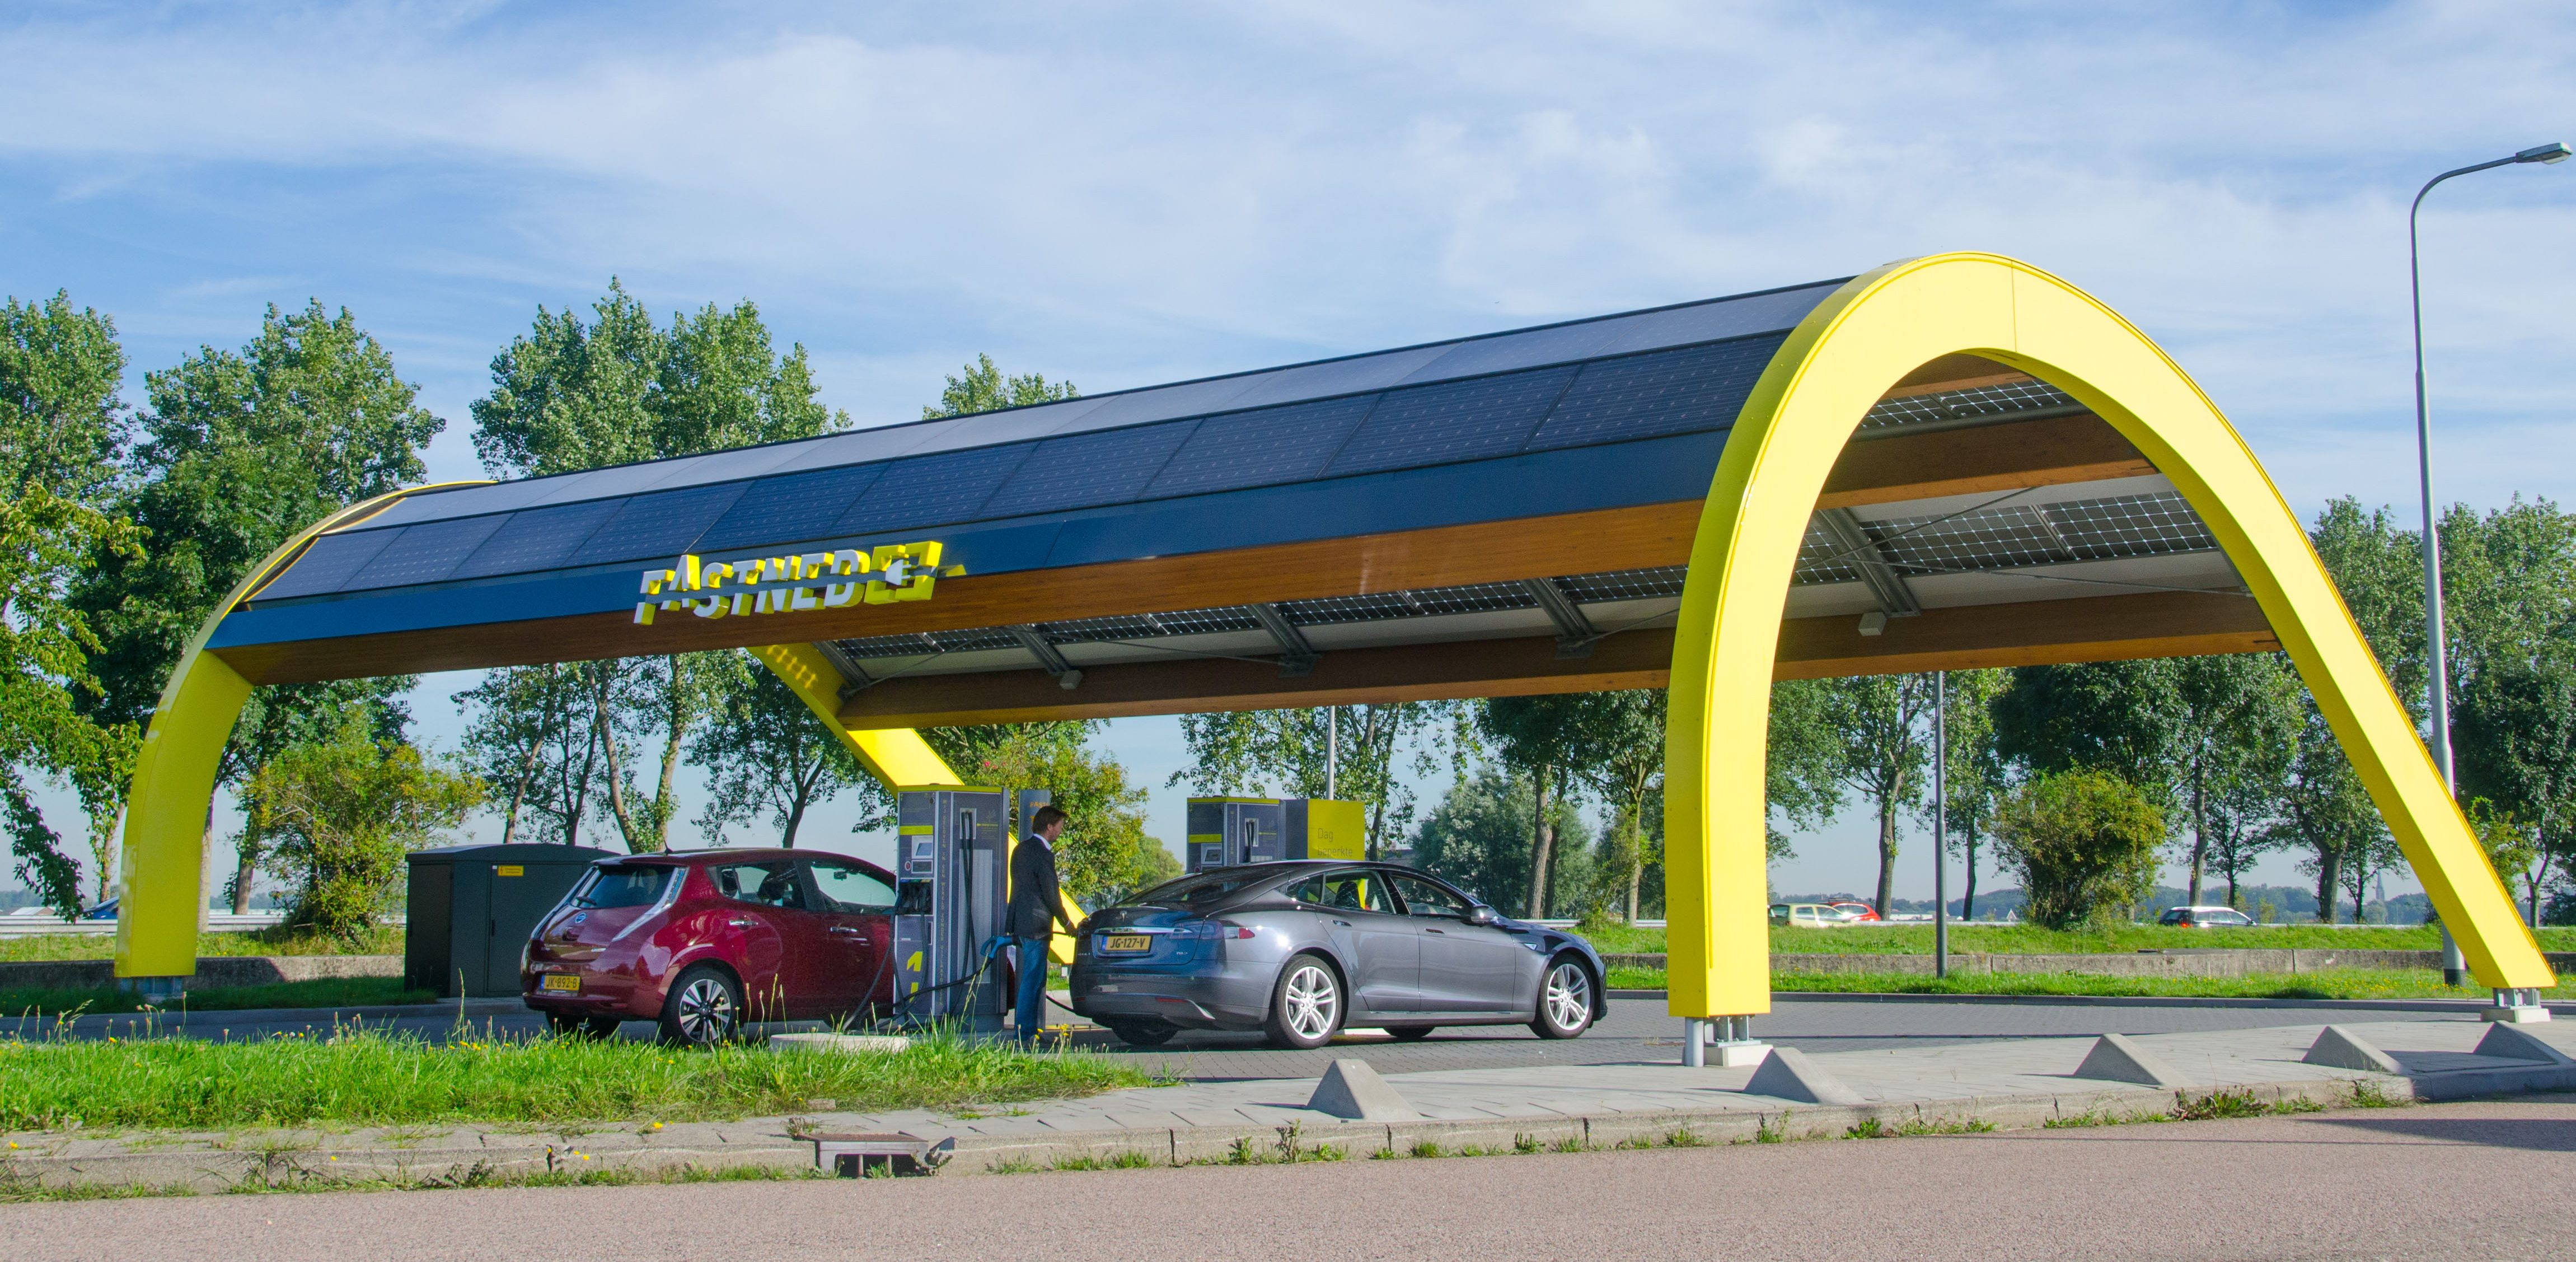 223763-fastned-4_rgb-7b97cb-original-1473172599